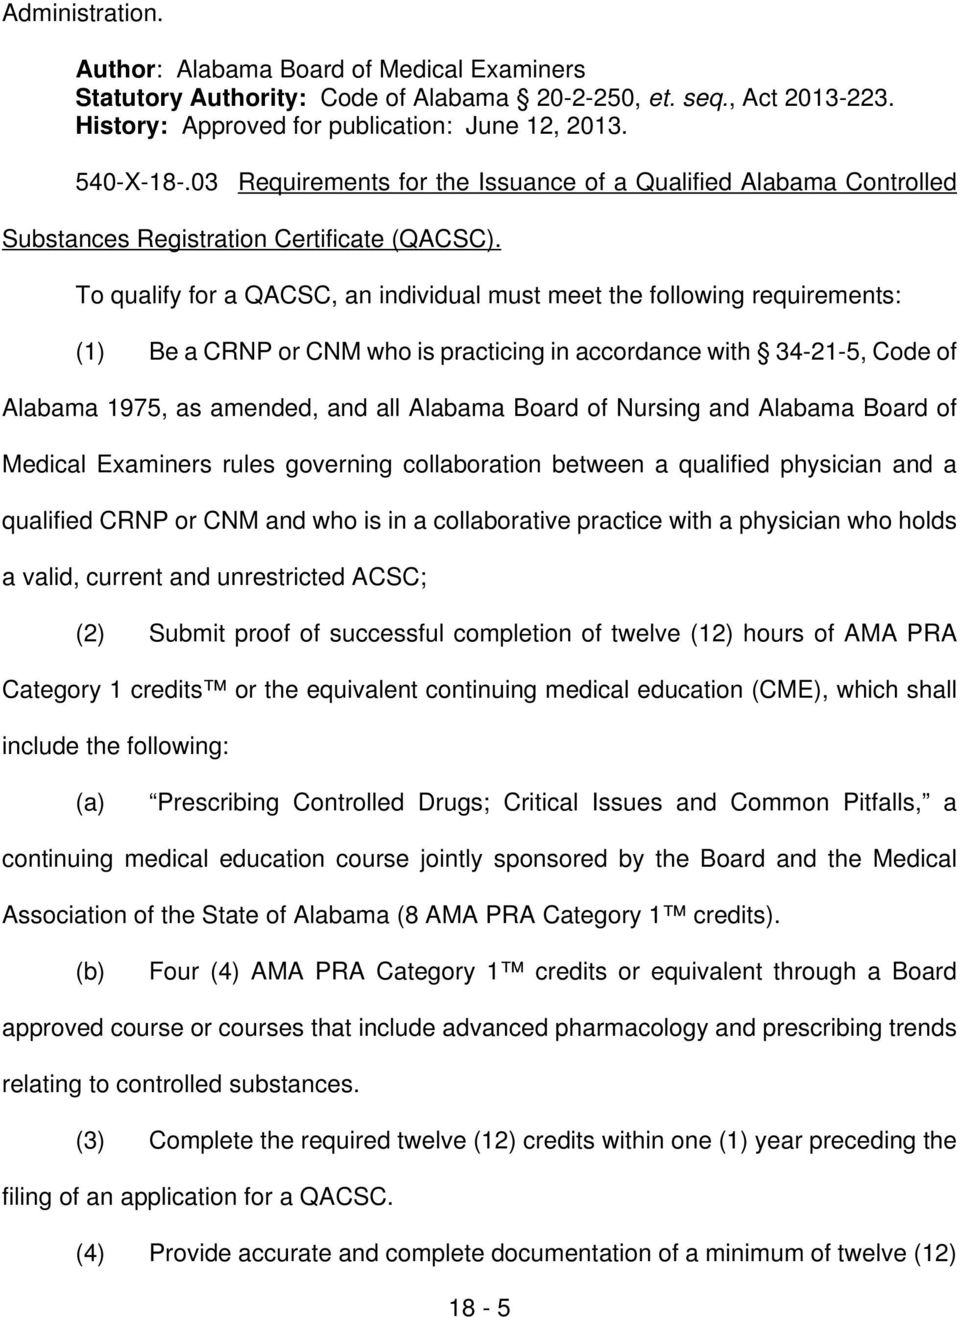 of Nursing and Alabama Board of Medical Examiners rules governing collaboration between a qualified physician and a qualified CRNP or CNM and who is in a collaborative practice with a physician who